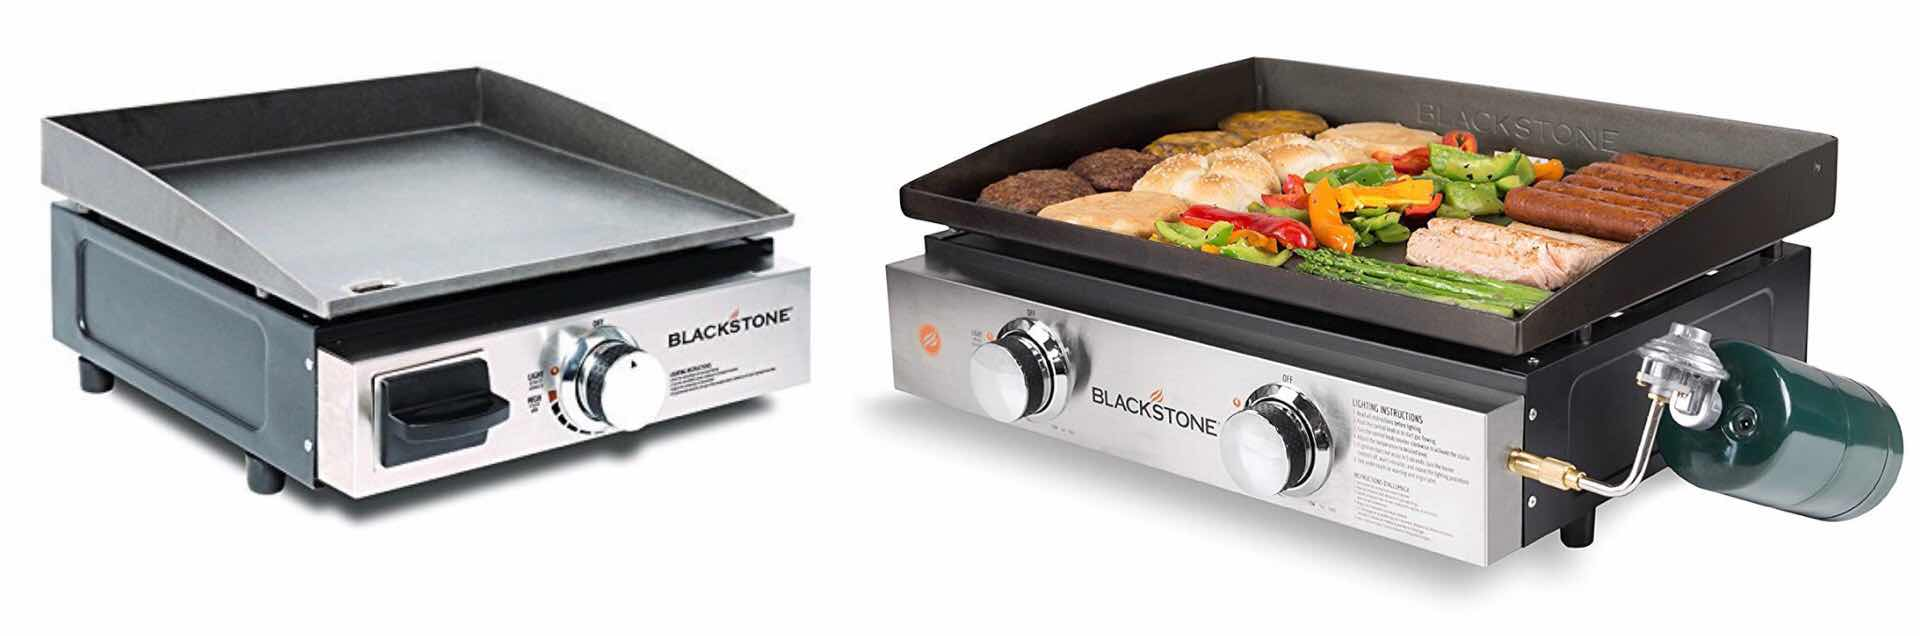 blackstone-portable-tabletop-propane-griddle